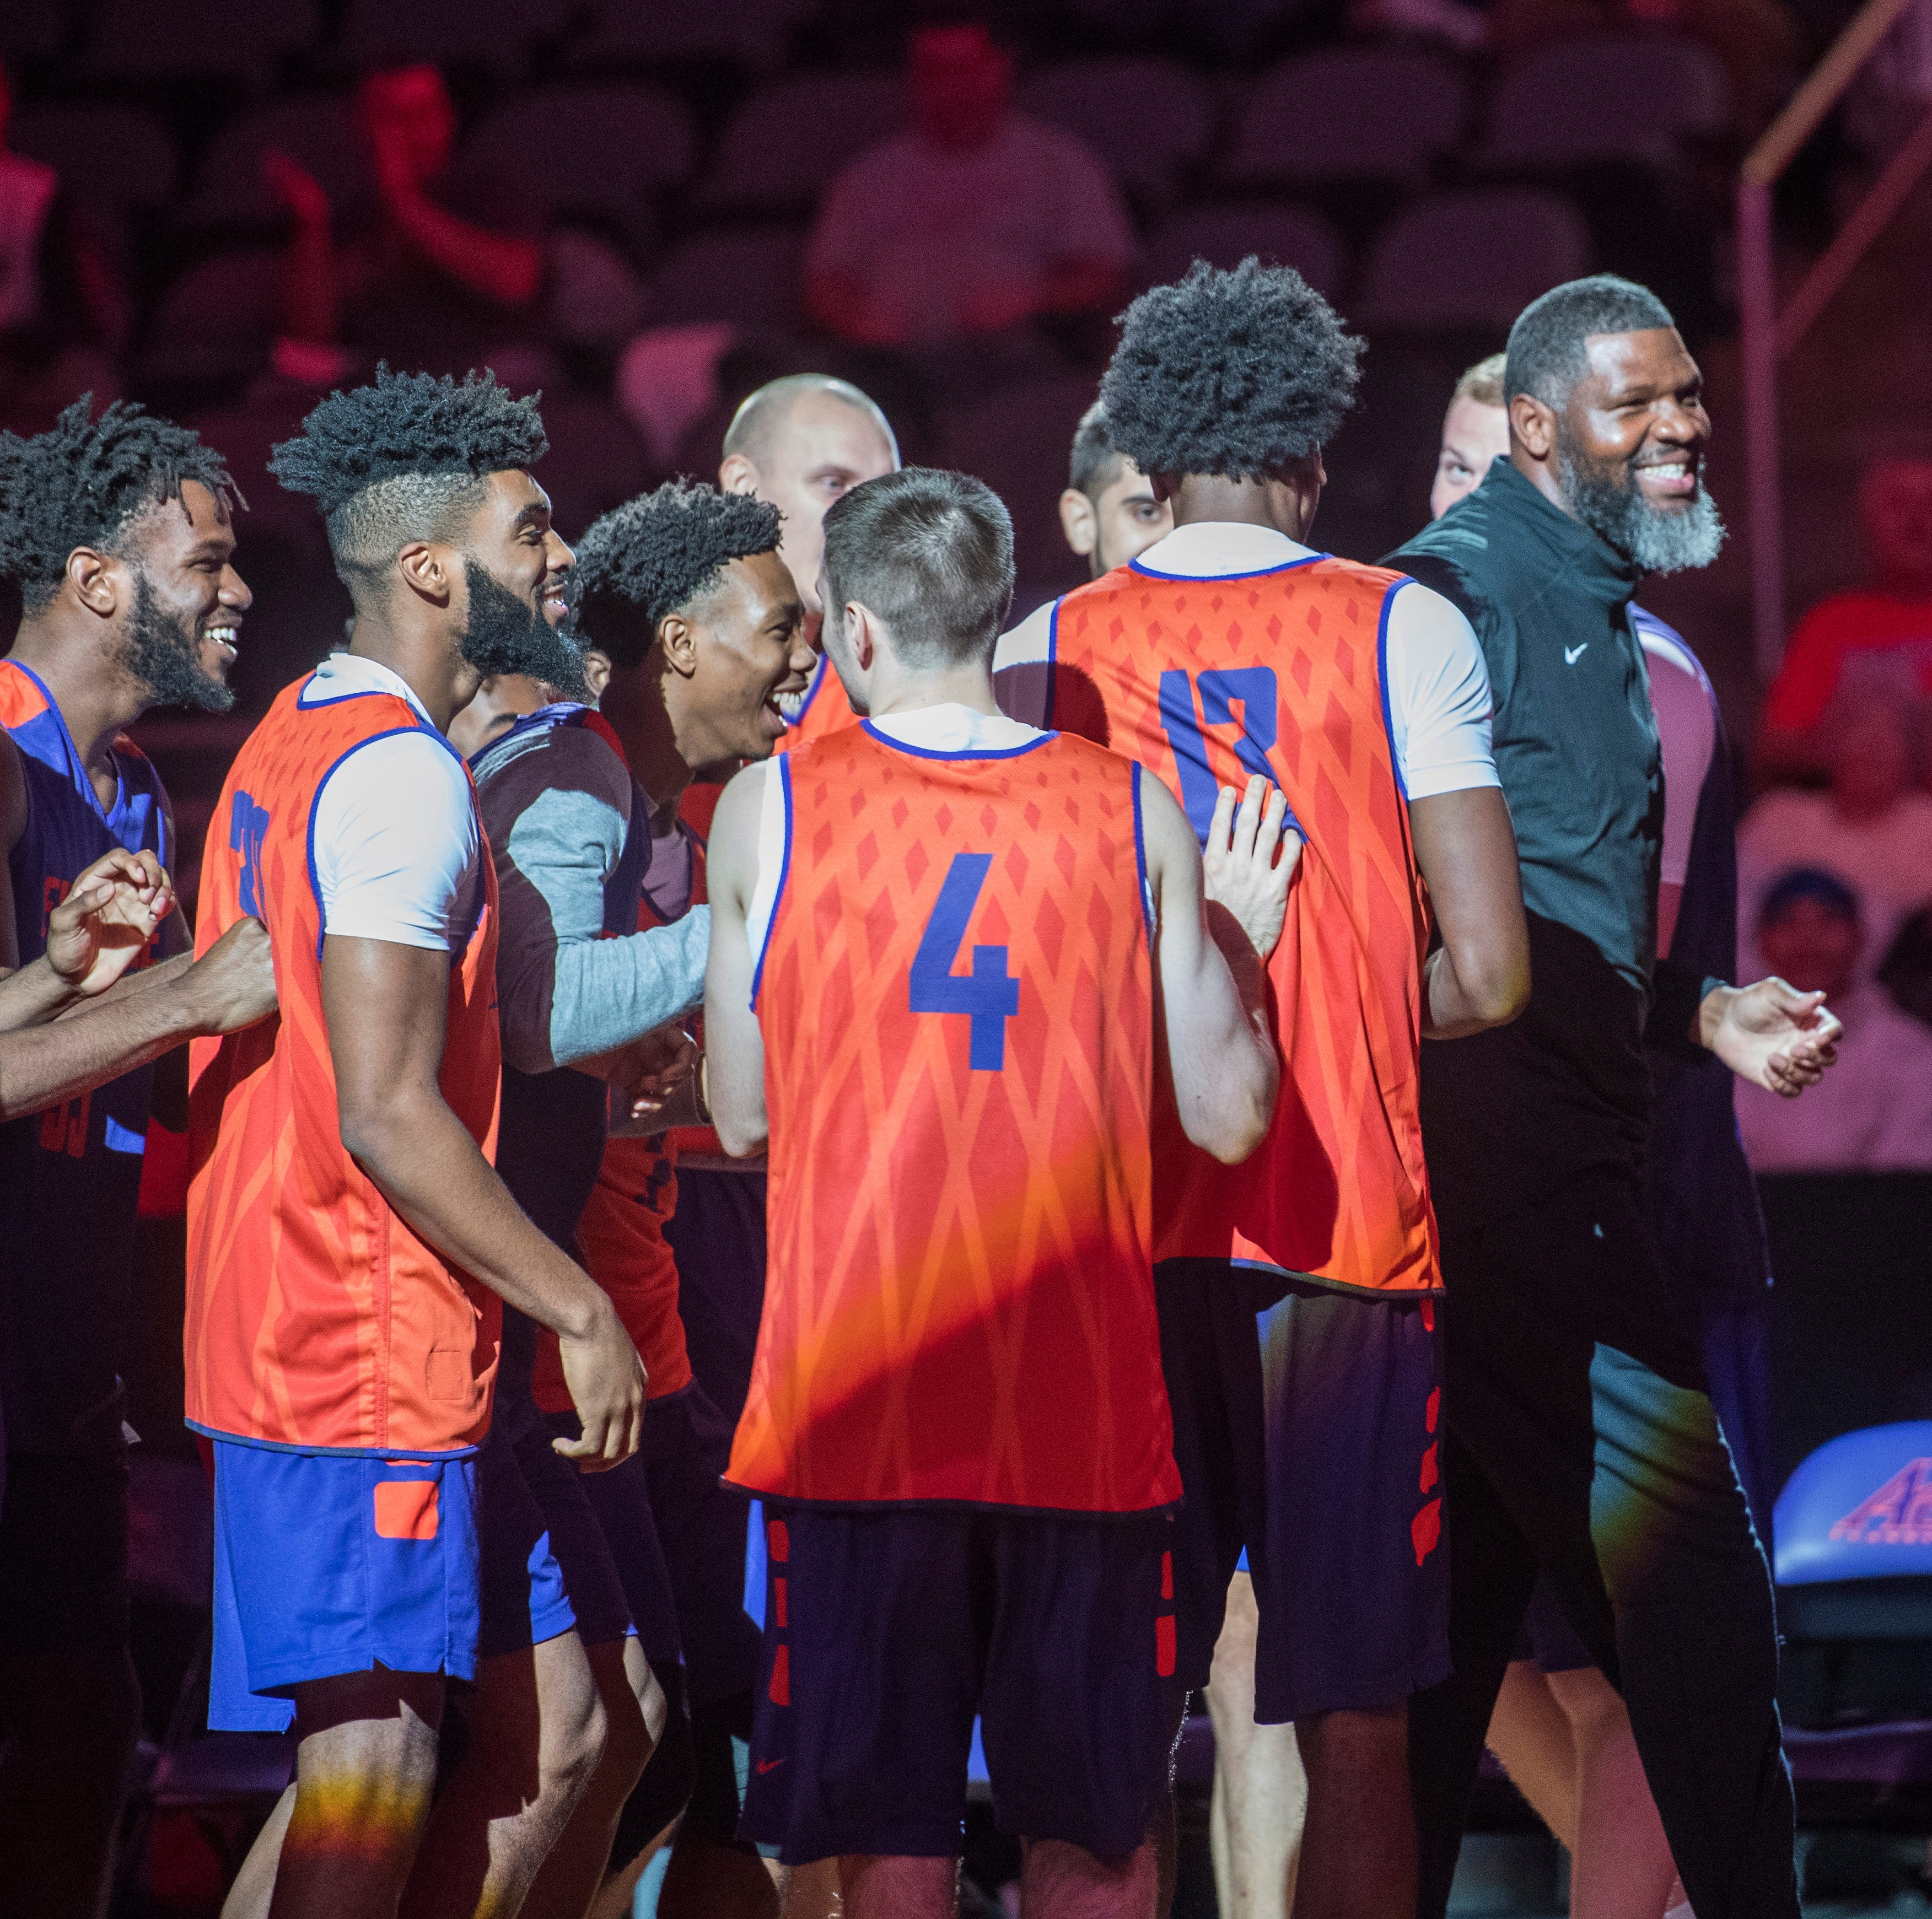 Evansville basketball HoopFest provides a glimpse of 2018-19 season and beyond